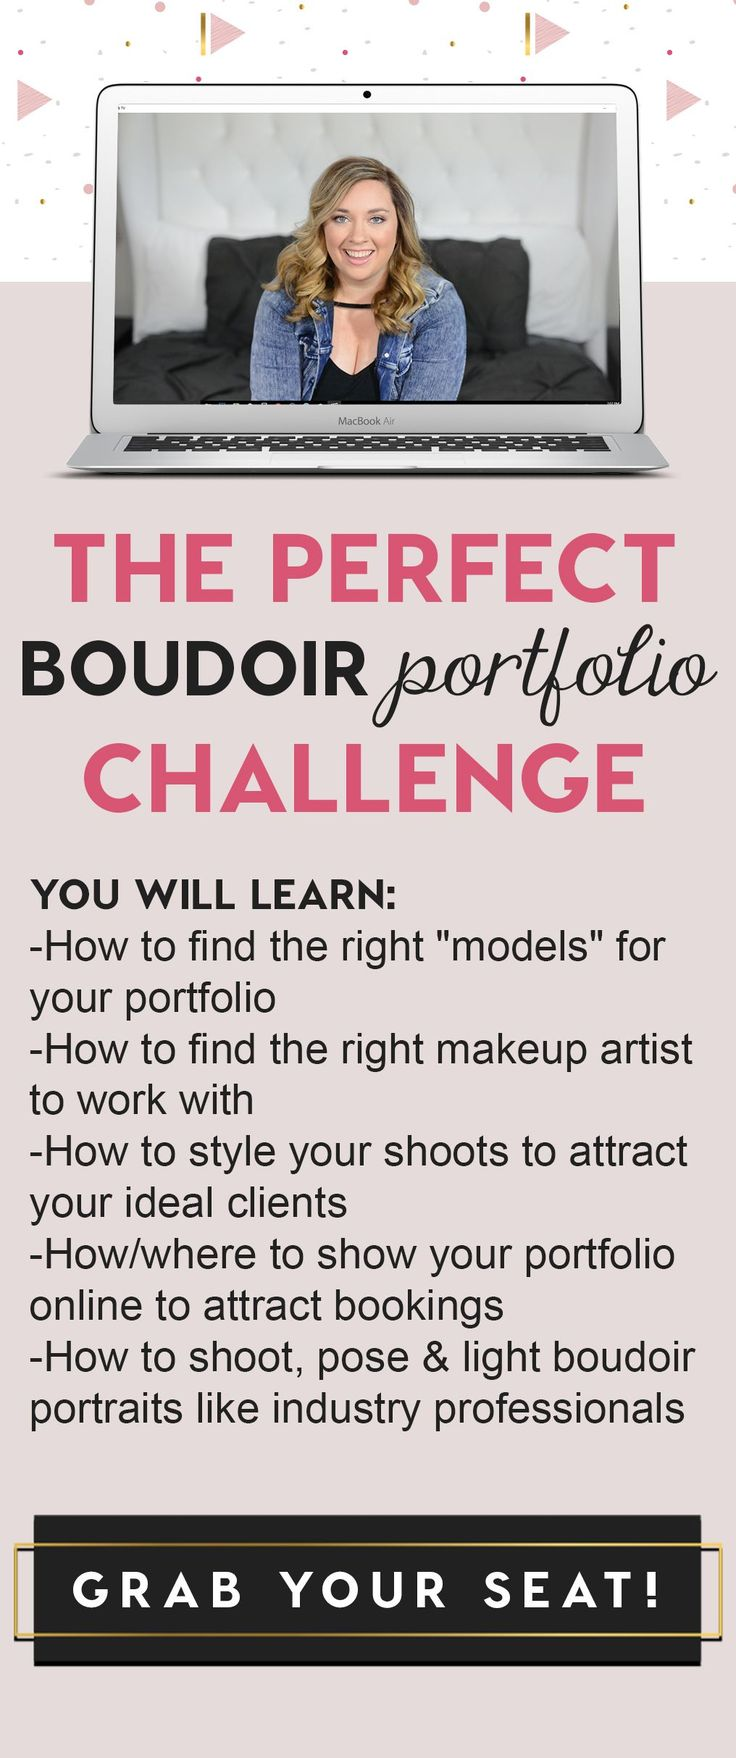 Join the FREE Boudoir Portfolio Challenge to learn how to grow your boudoir portfolio! http://portfoliochallenge.pages.ontraport.net/